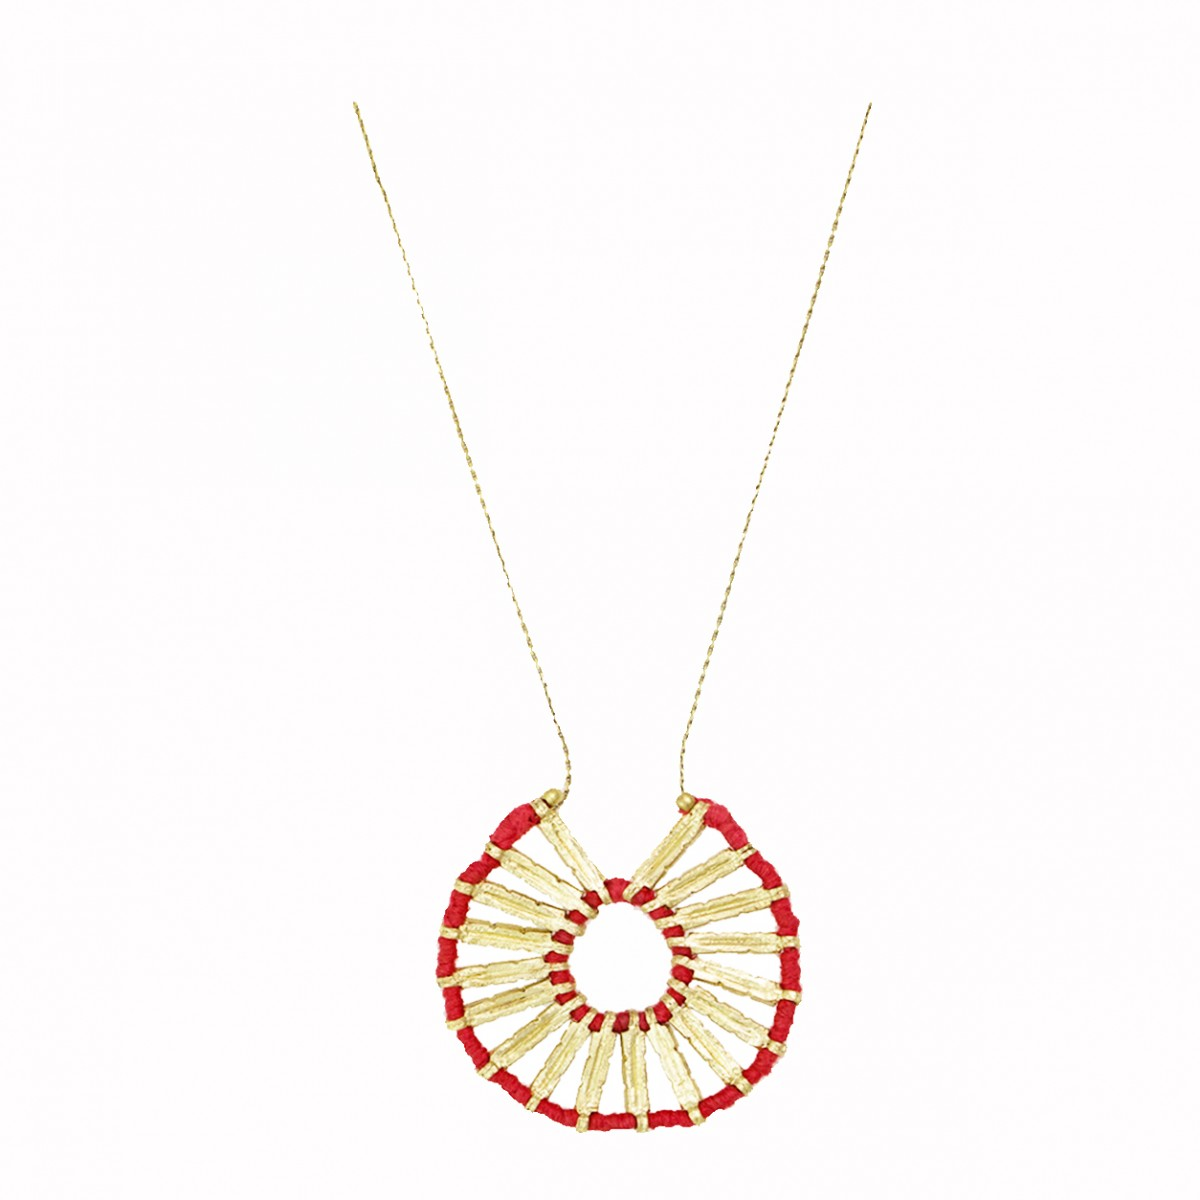 Bohemian Wheel Pendant Necklace - Red